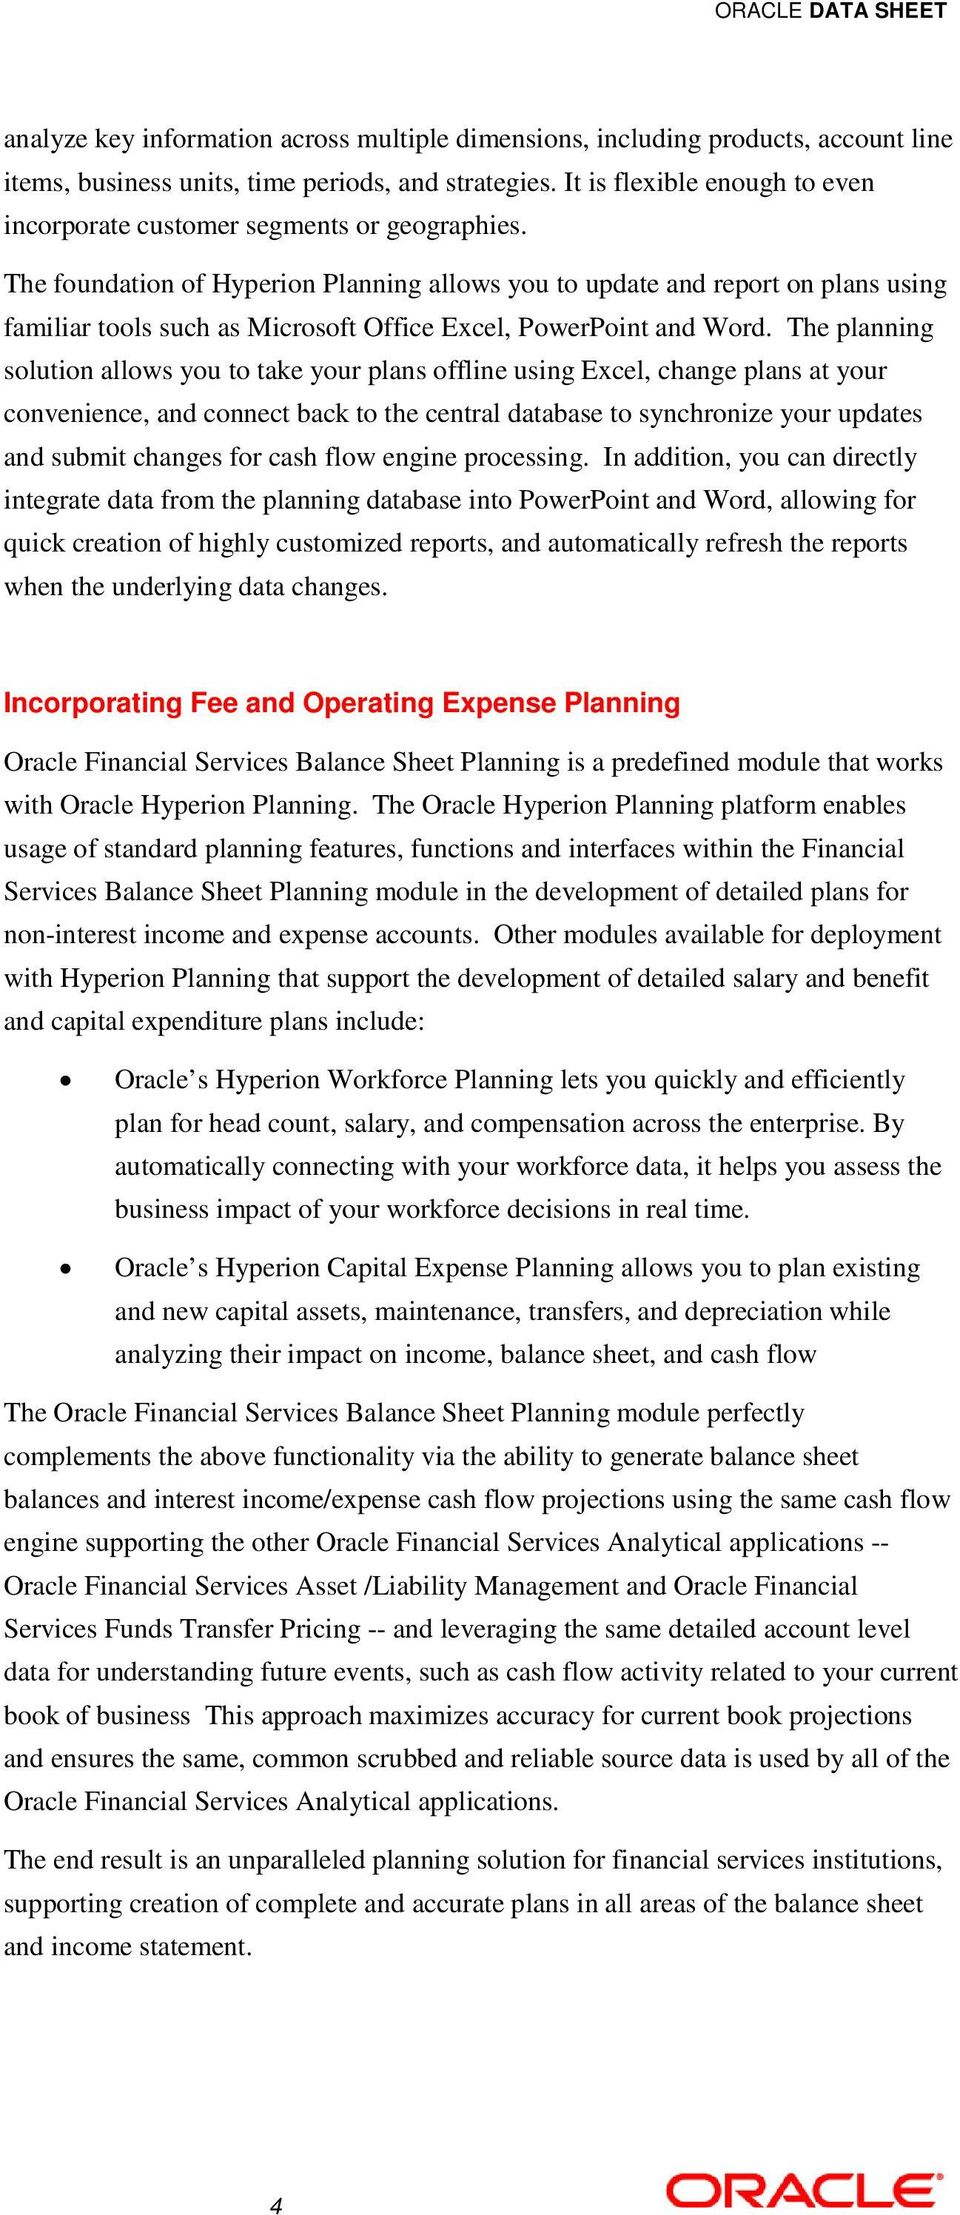 The foundation of Hyperion Planning allows you to update and report on plans using familiar tools such as Microsoft Office Excel, PowerPoint and Word.